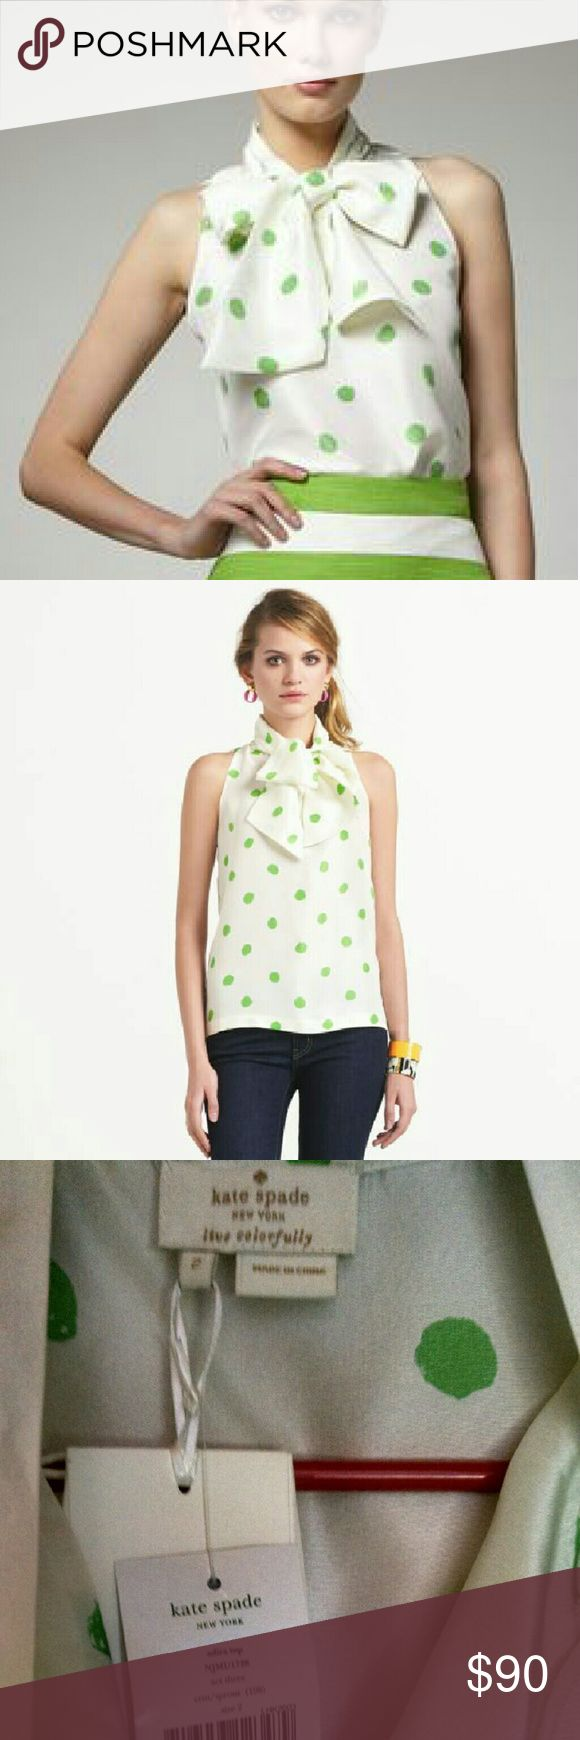 "SALE-RARE Kate Spade Adira Top NWT but there is some irregularities or damage on the fabric (see the 4th pic for example). Personally I don't think it's too noticeable, but it's up to you. The price reflects this ""as is"" condition.  The first two pics are from retailer and for reference only.  Cream/sprout (green) polka-dot?  ? Tie neckline.  ? Sleeveless.  ? Relaxed silhouette.  ? Silk.  ? Imported.  ? Dry clean? kate spade Tops Blouses"